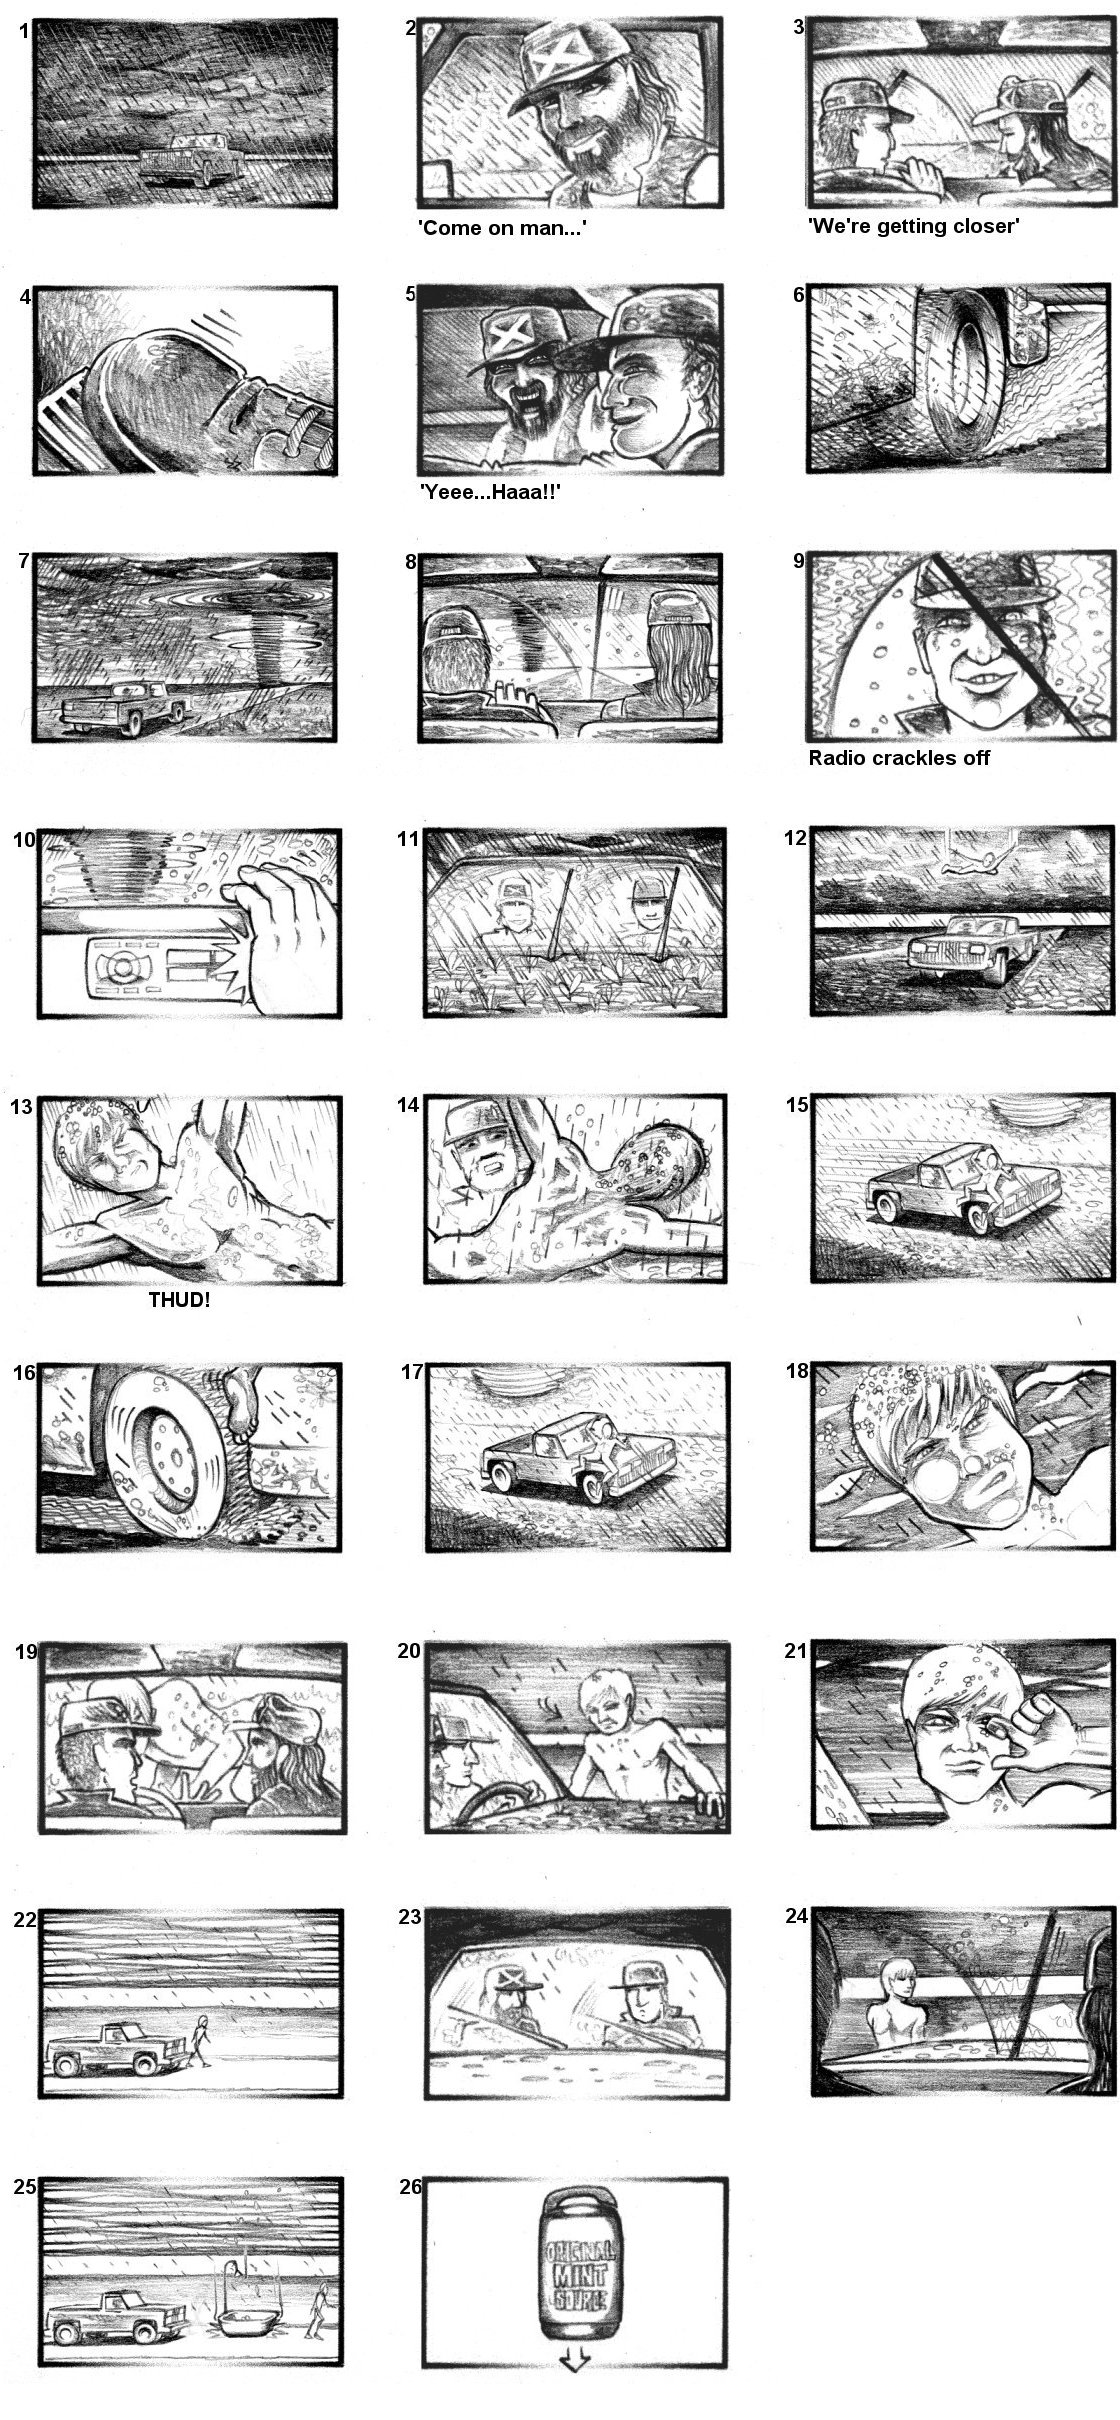 CUSSON'S MINT SOURCE STORYBOARDS BY ANDY SPARROW